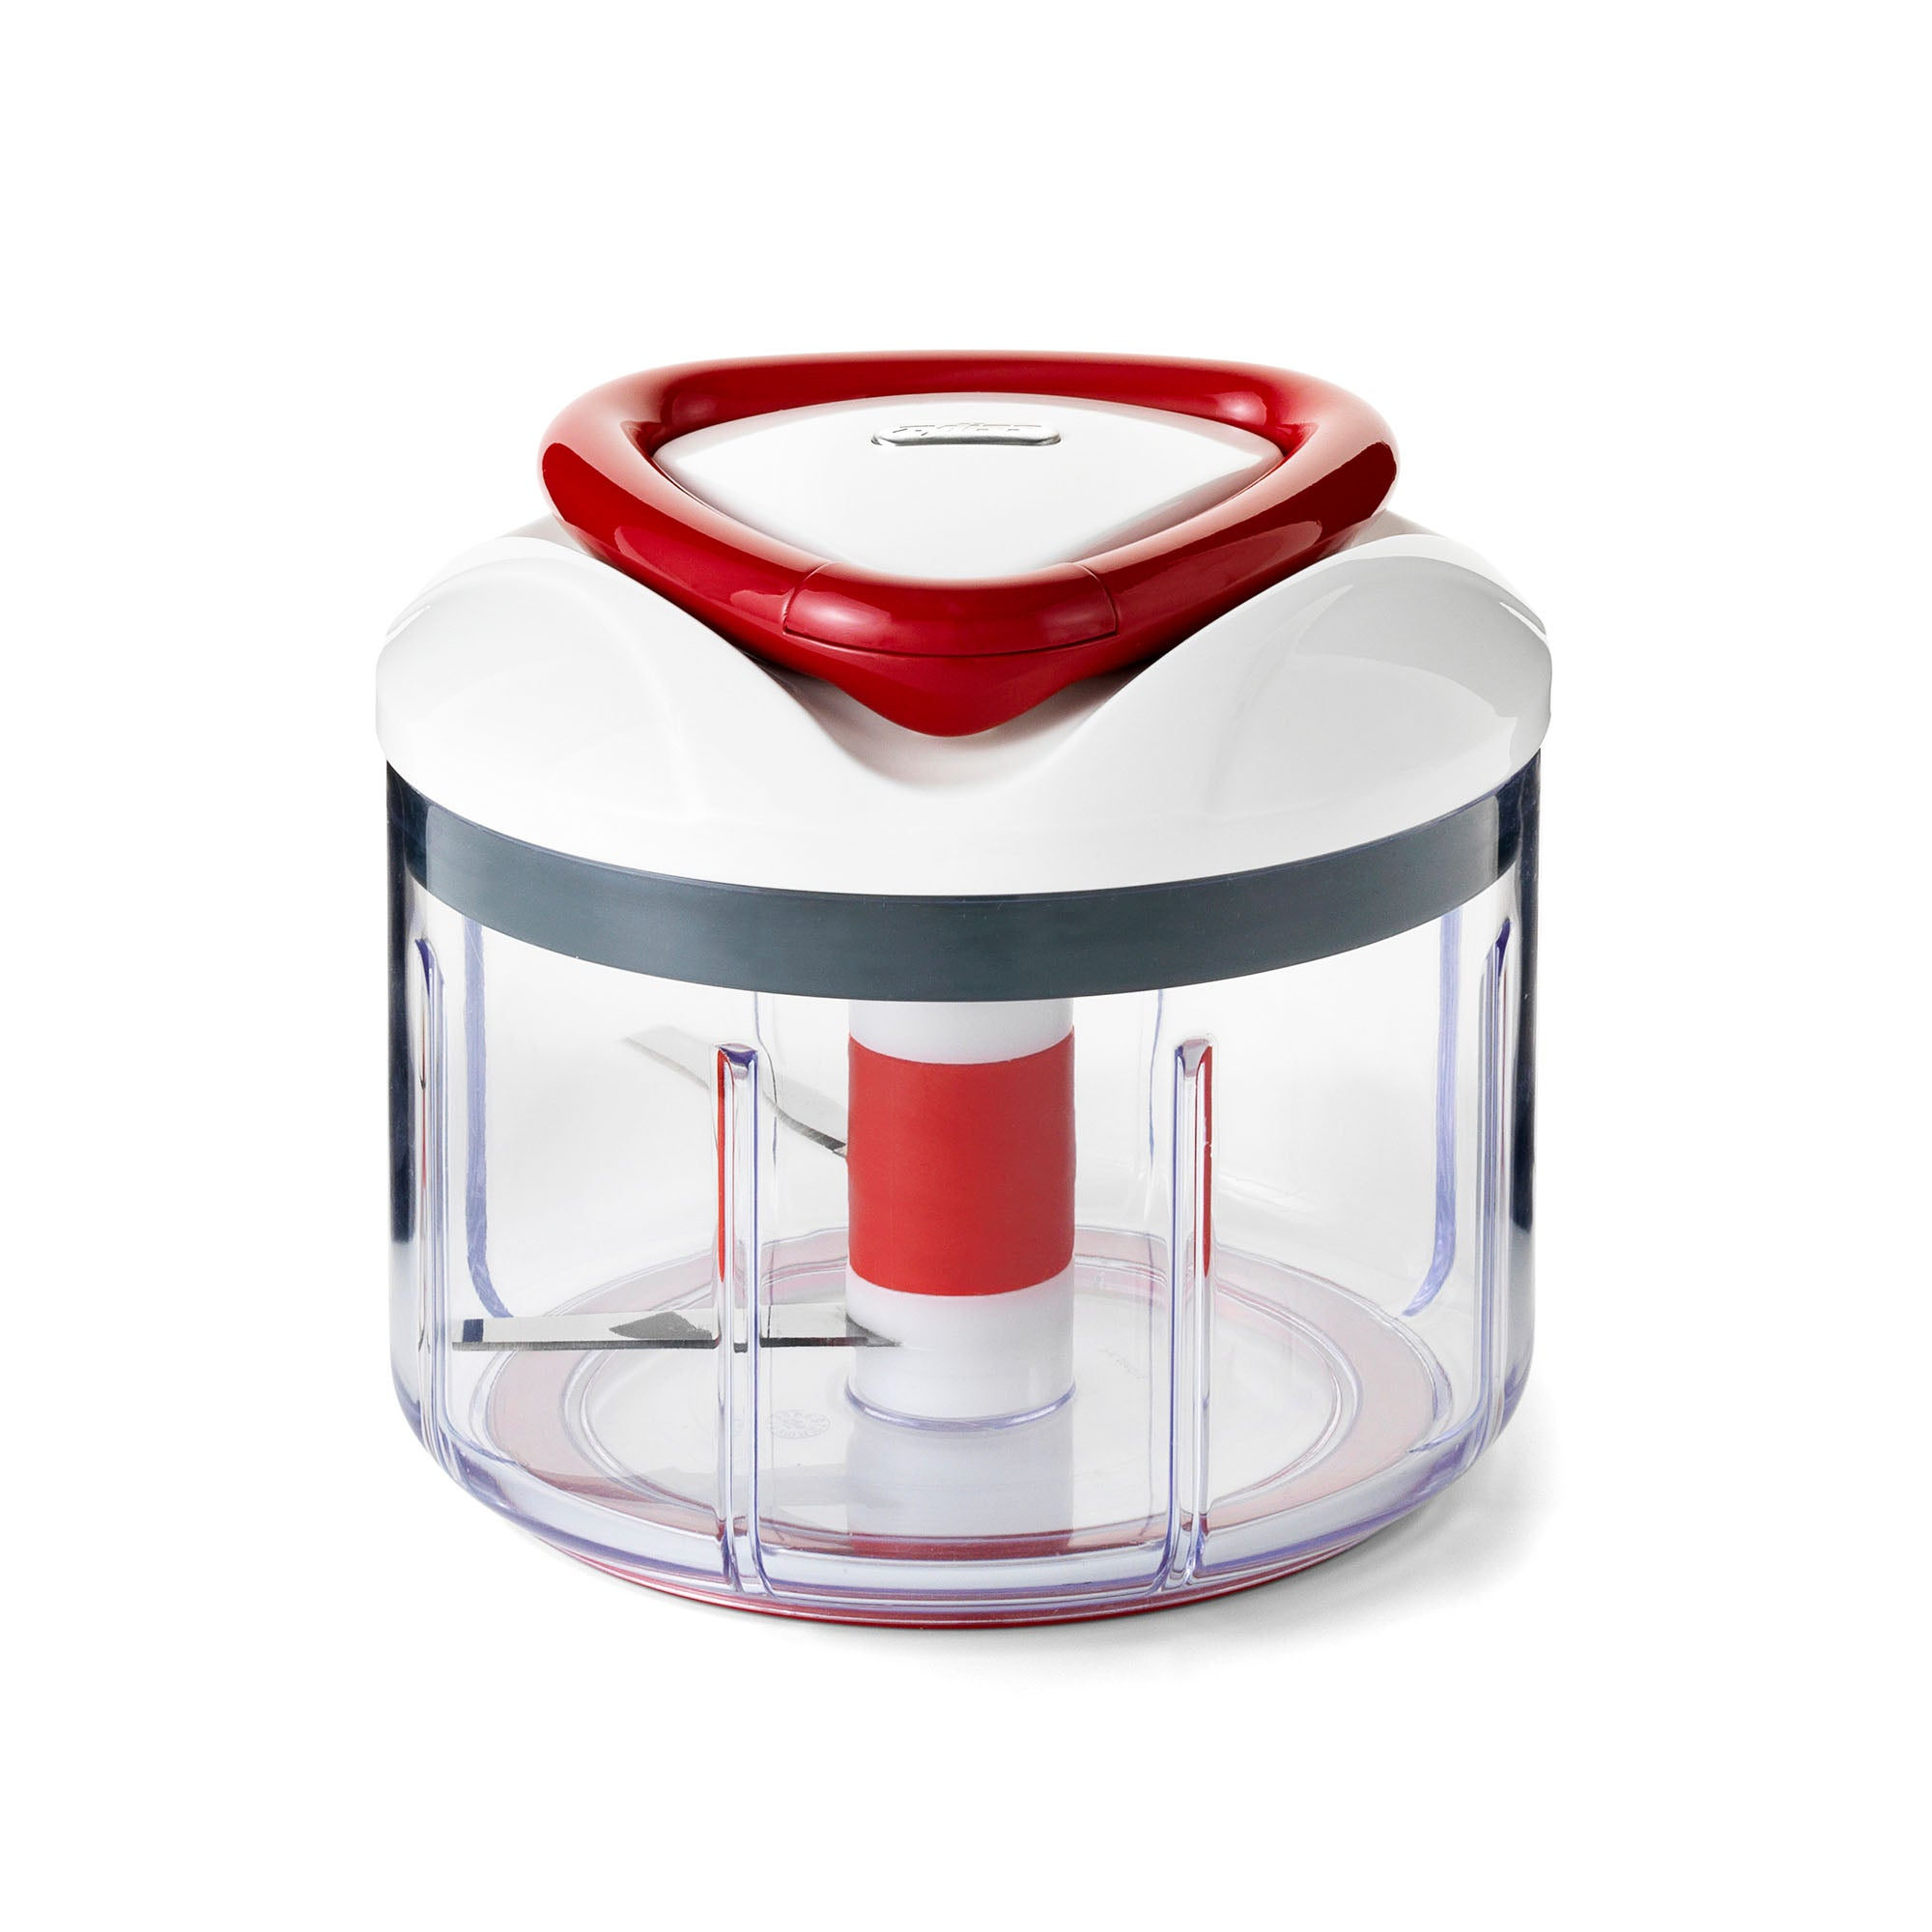 Zyliss Easy Pull Food Processor White